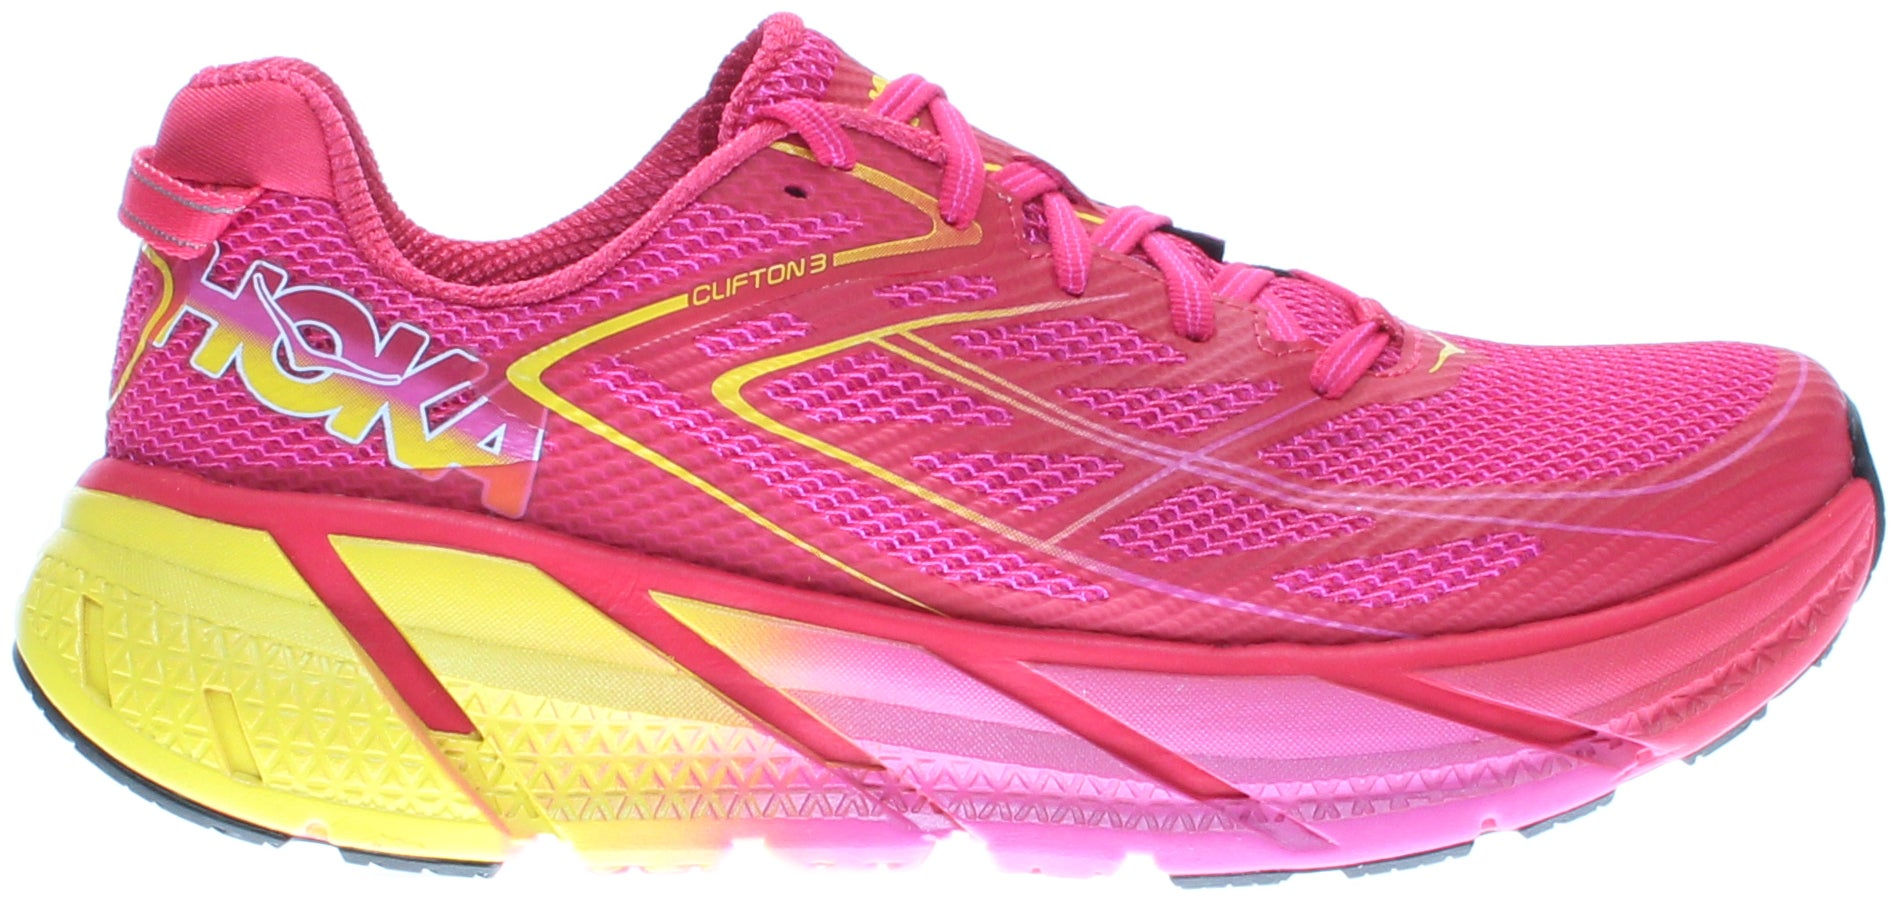 Hoka Clifton 3 Womens - Pink - Womens The CLIFTON 3 improves upon its decorated heritage with this new release. The upper features a new fit with a more accommodating forefoot, as well as a seamless speed frame construction for light weight and supreme comfort. A similar midsole geometry means that the industry leading ride remains as light and smooth as ever. When cushioning and light weight are your top priorities, look no further.